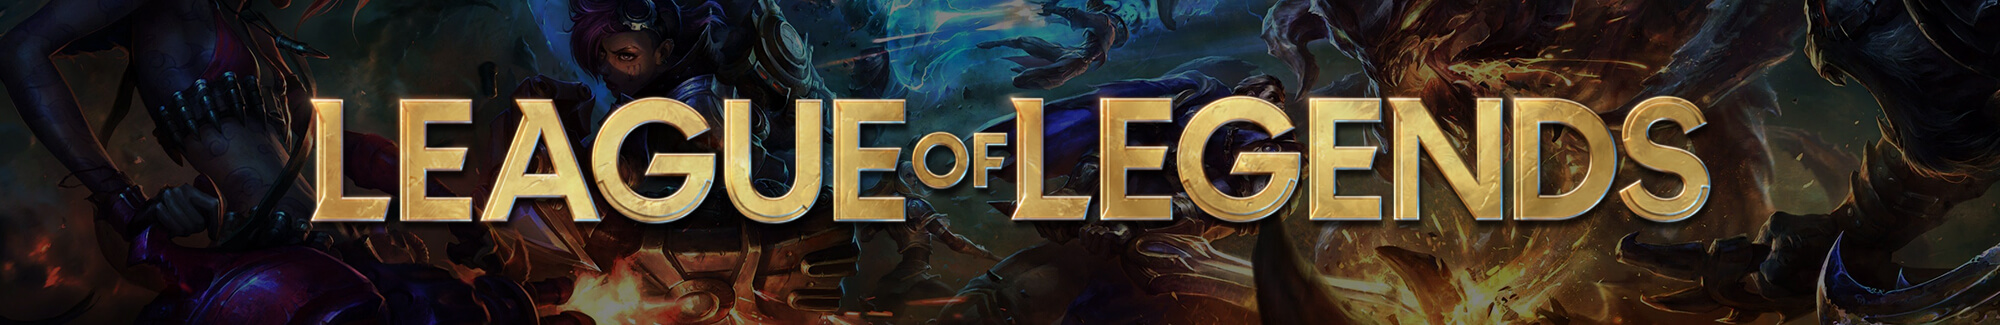 League of legends1